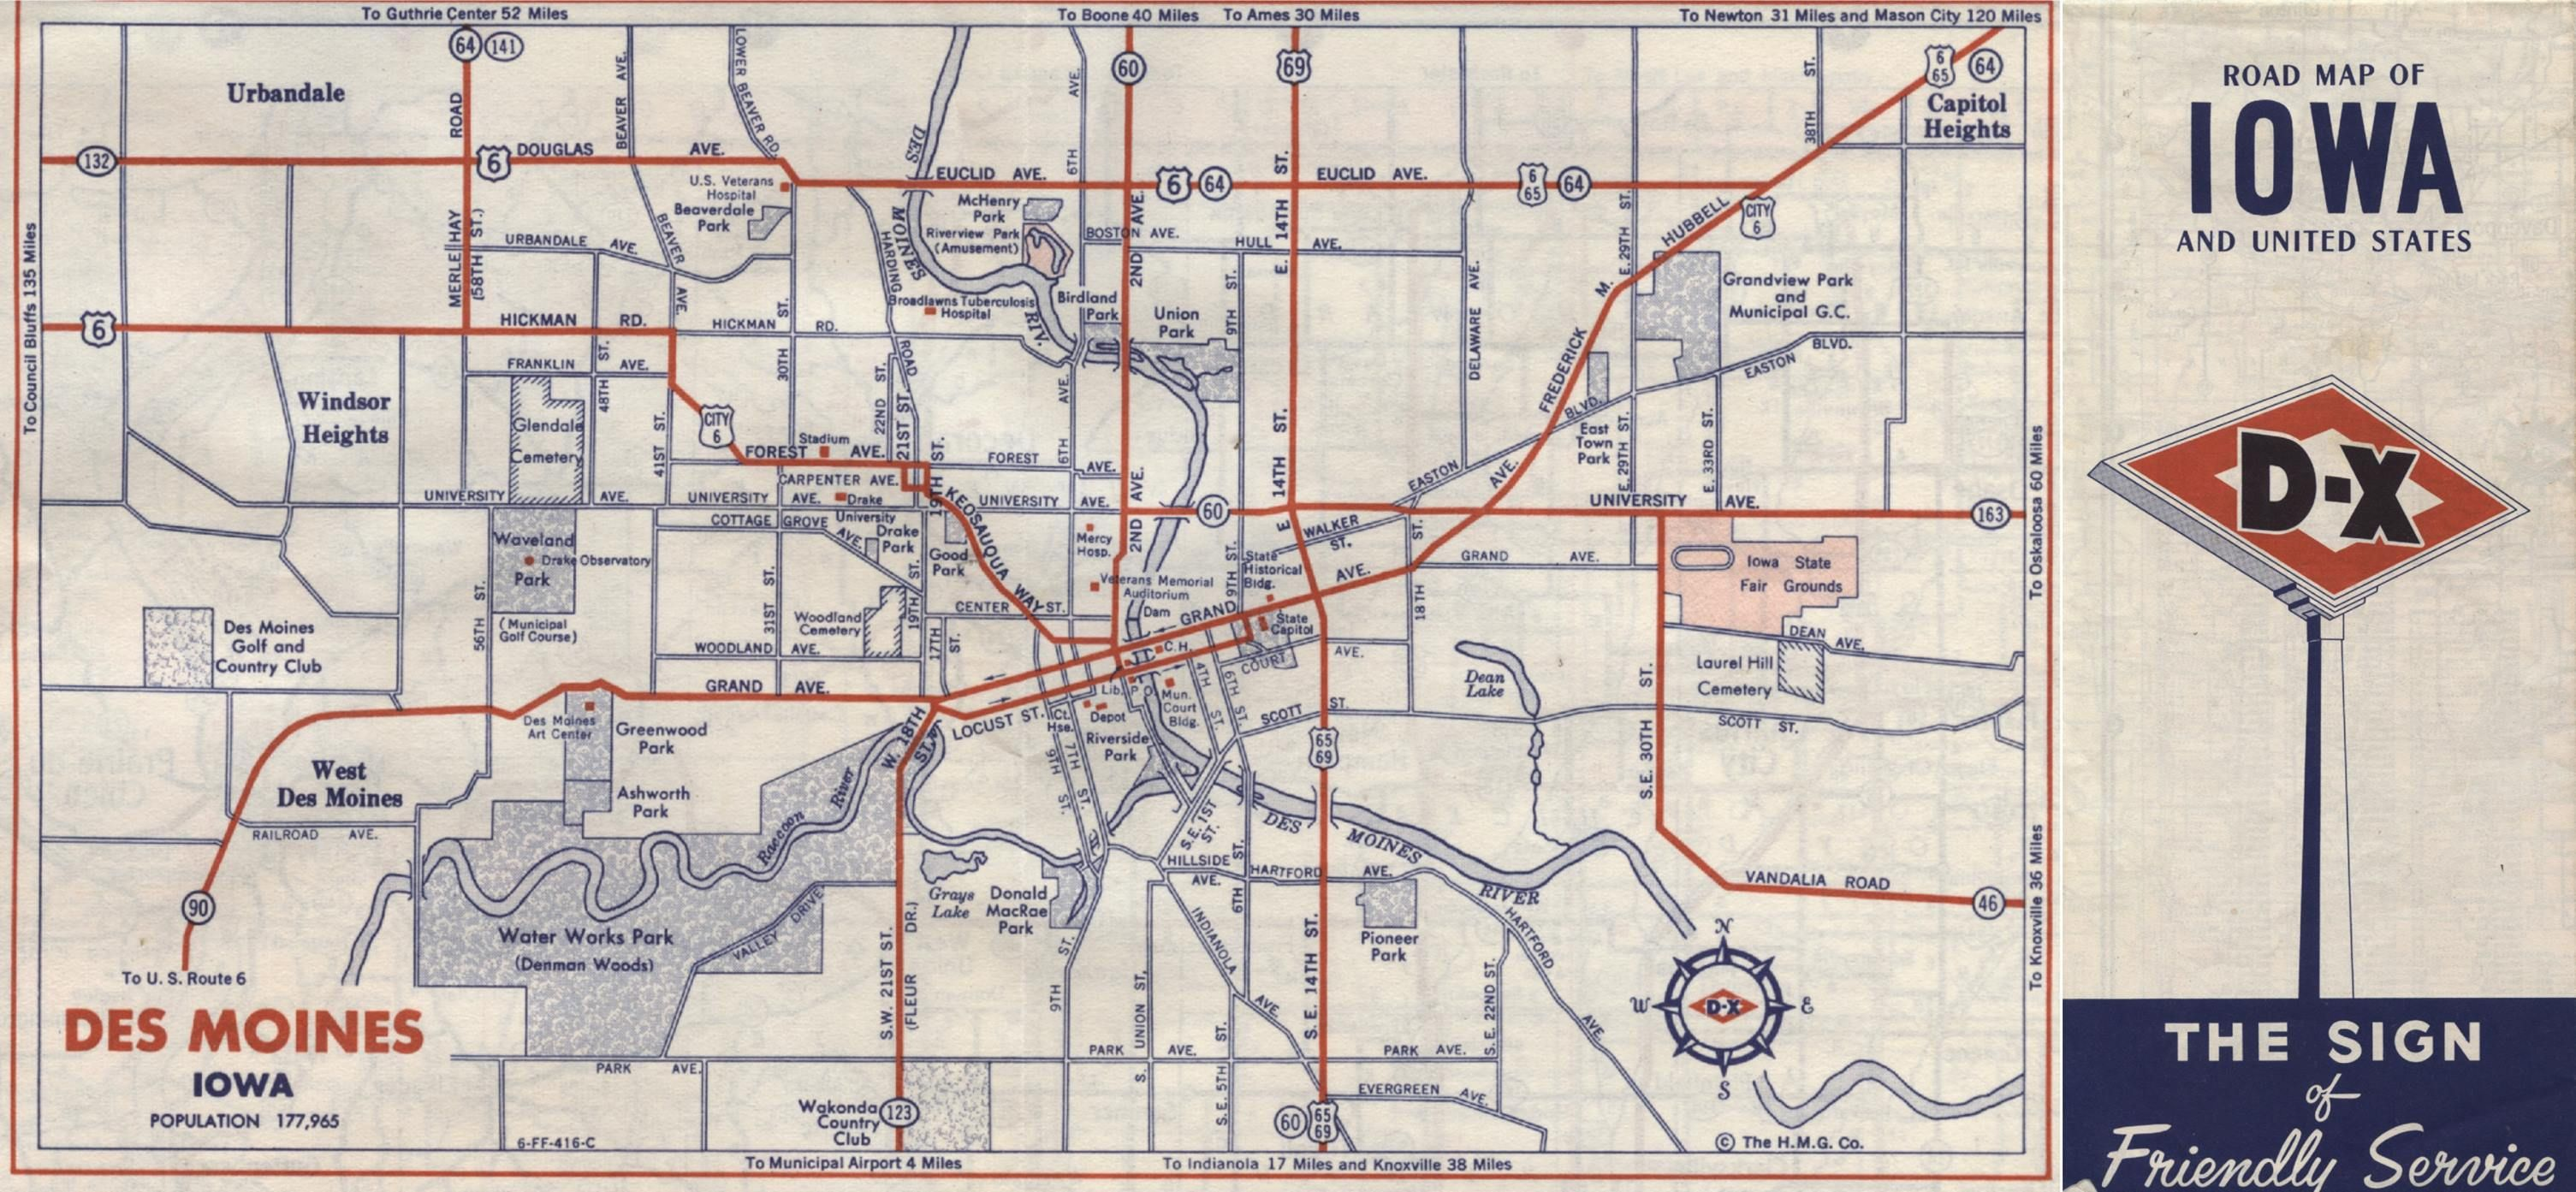 Excerpt From A D X 1958 Road Map Showing A Map Of Des Moines No Freeway Or Interstates Des Moines Iowa Roadmap